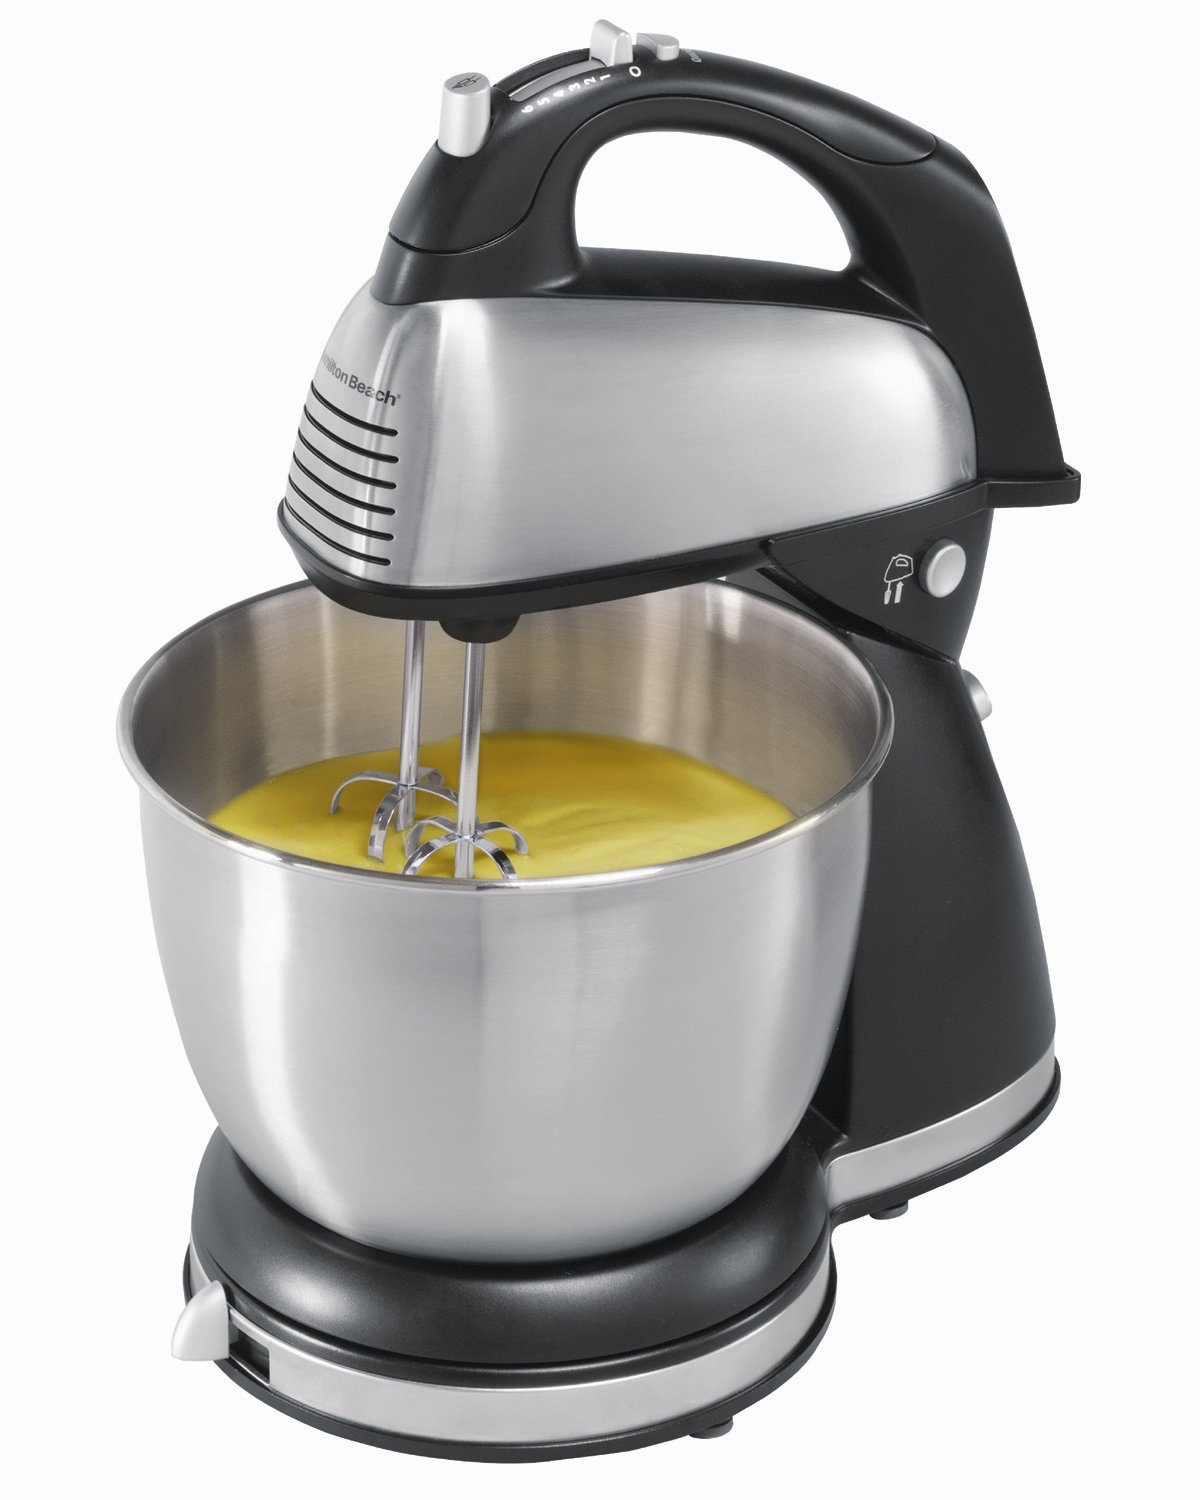 Hamilton Beach 6-Speed Stainless Stand Mixer